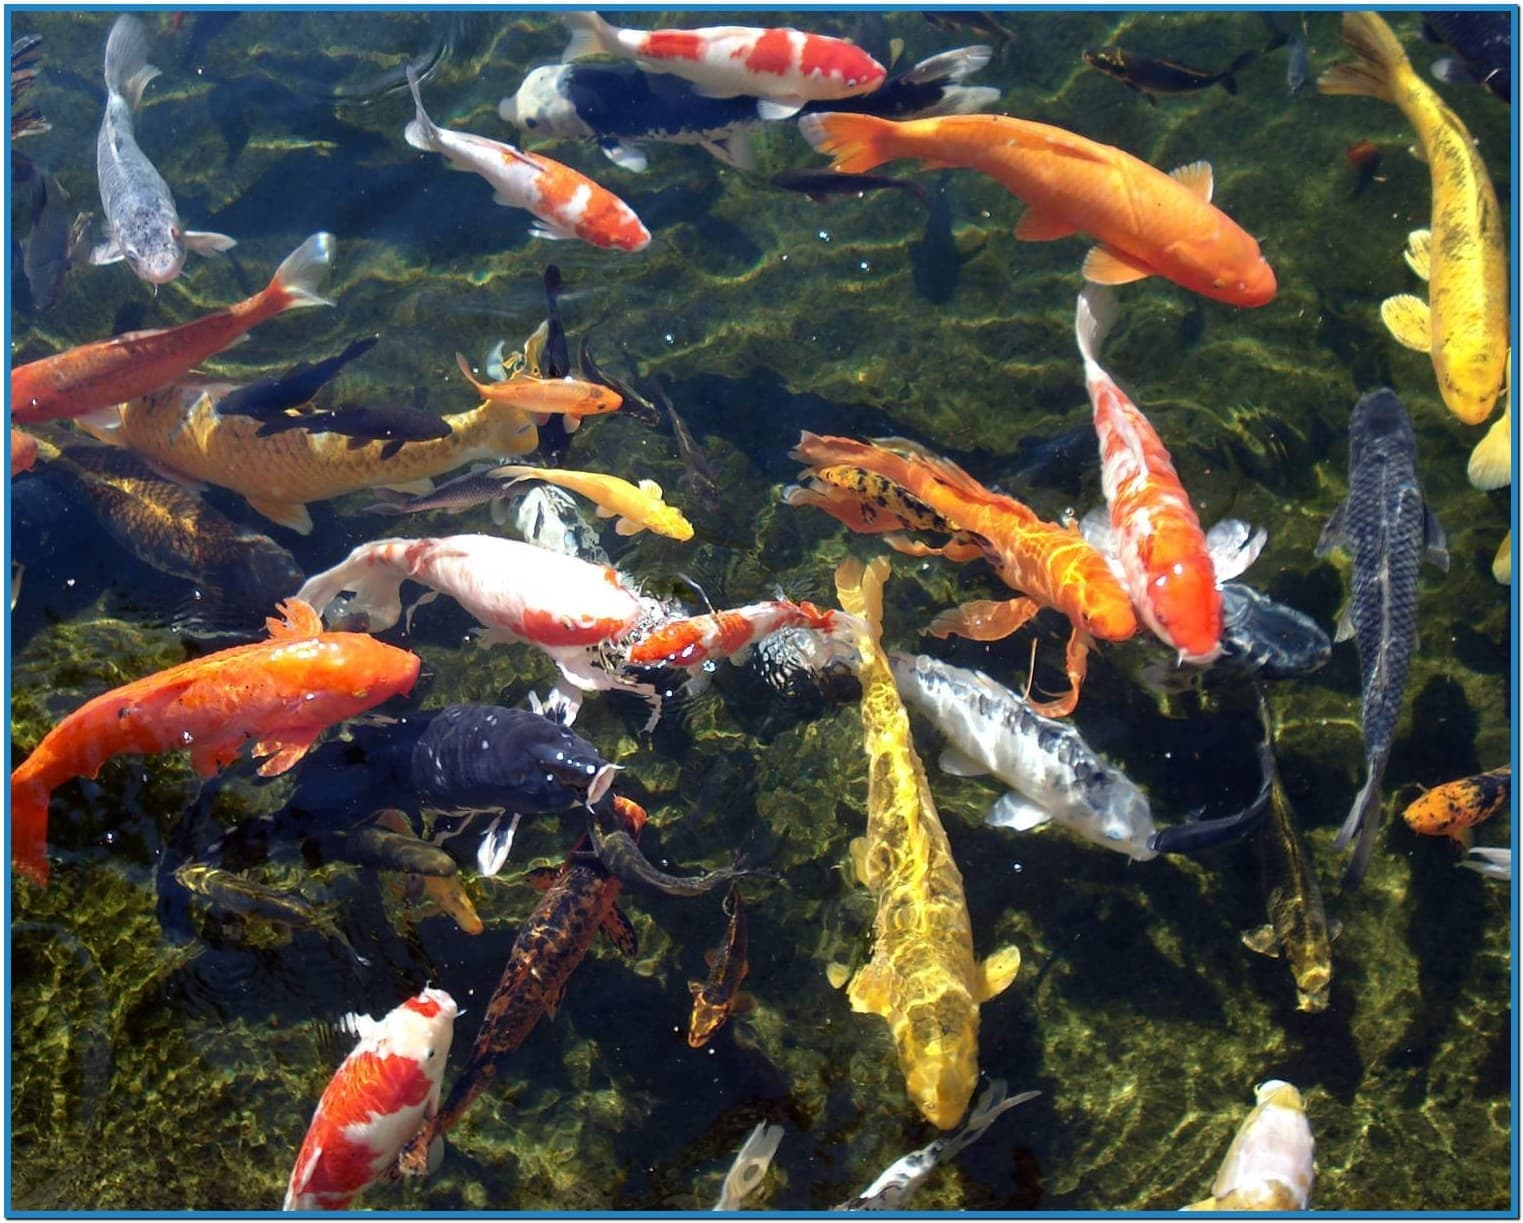 Moving koi fish wallpaper wallpapersafari for Moving fish wallpaper